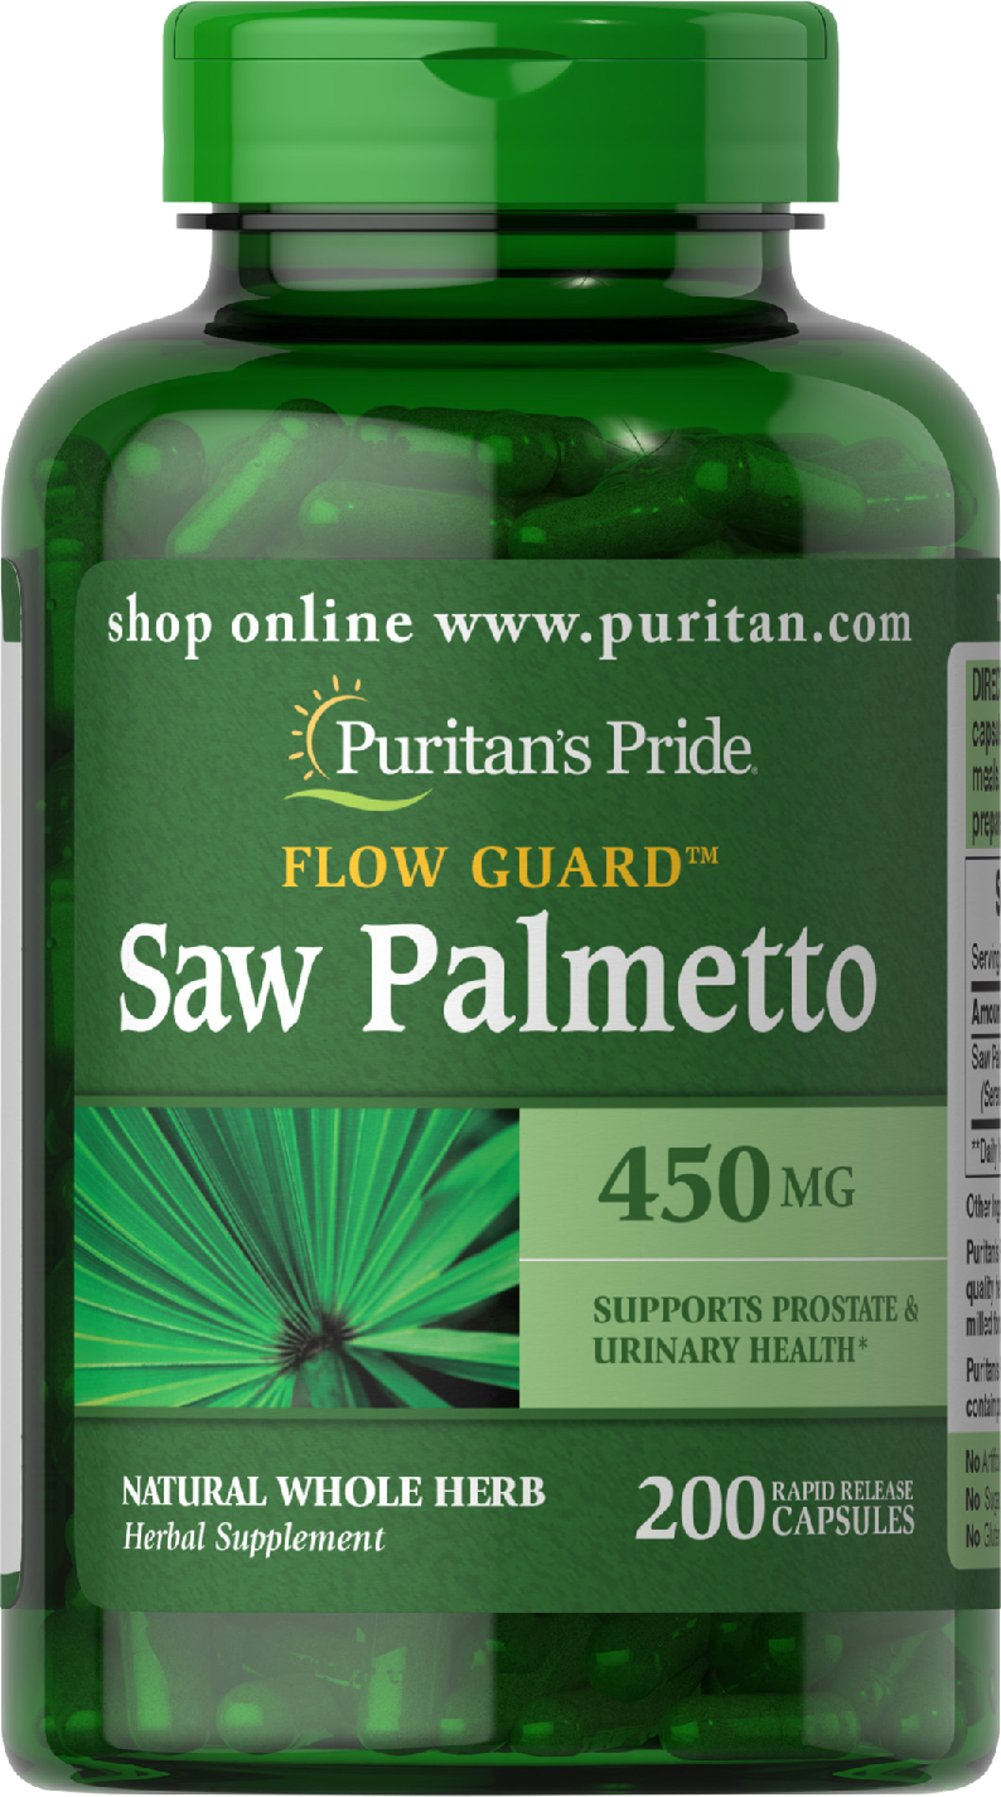 Saw Palmetto 450 mg <p></p>Saw Palmetto is an extract derived from the berry of the Saw Palmetto tree and is the leading herb for men's health.** Our high-quality softgels deliver 450 mg of Saw Palmetto, an herb that has been traditionally used to support prostate and urinary health in men, especially in later years.** Our extract provides a natural whole herb in a convenient to take softgel capsule. <br /><p></p> 200 Capsules 450 mg $16.99